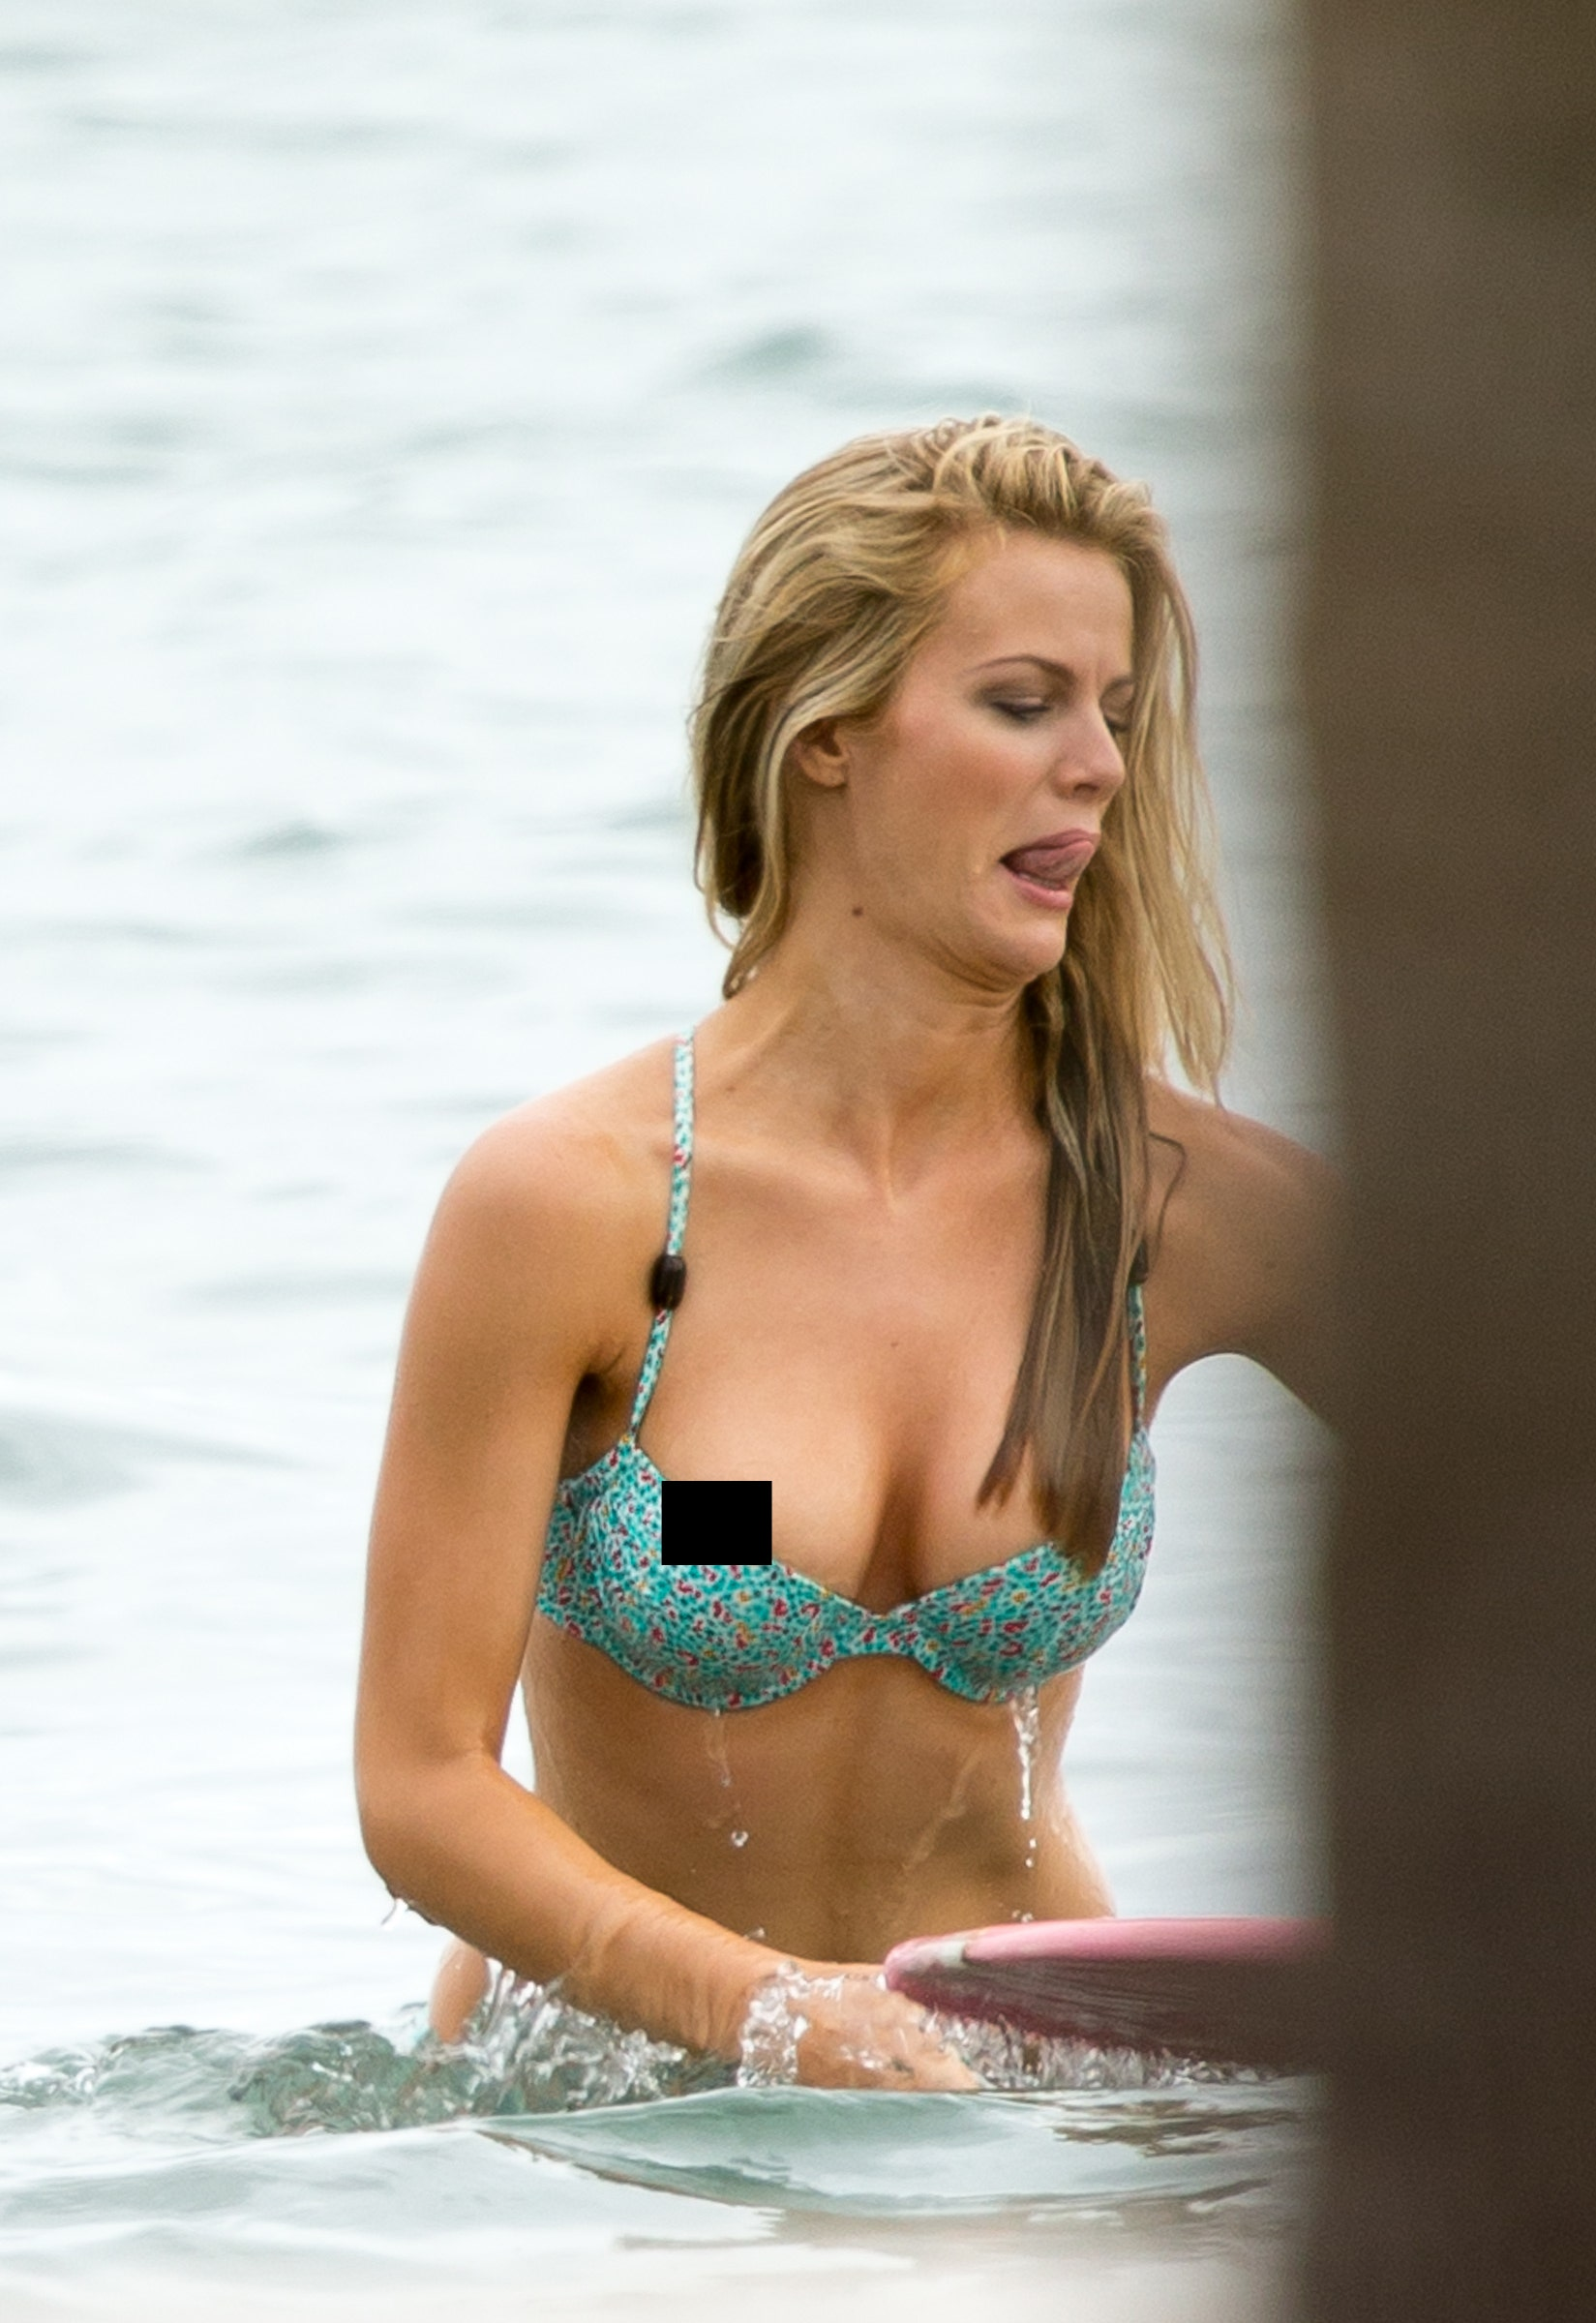 Displaying 20> Images For - Bathing Suit Malfunctions